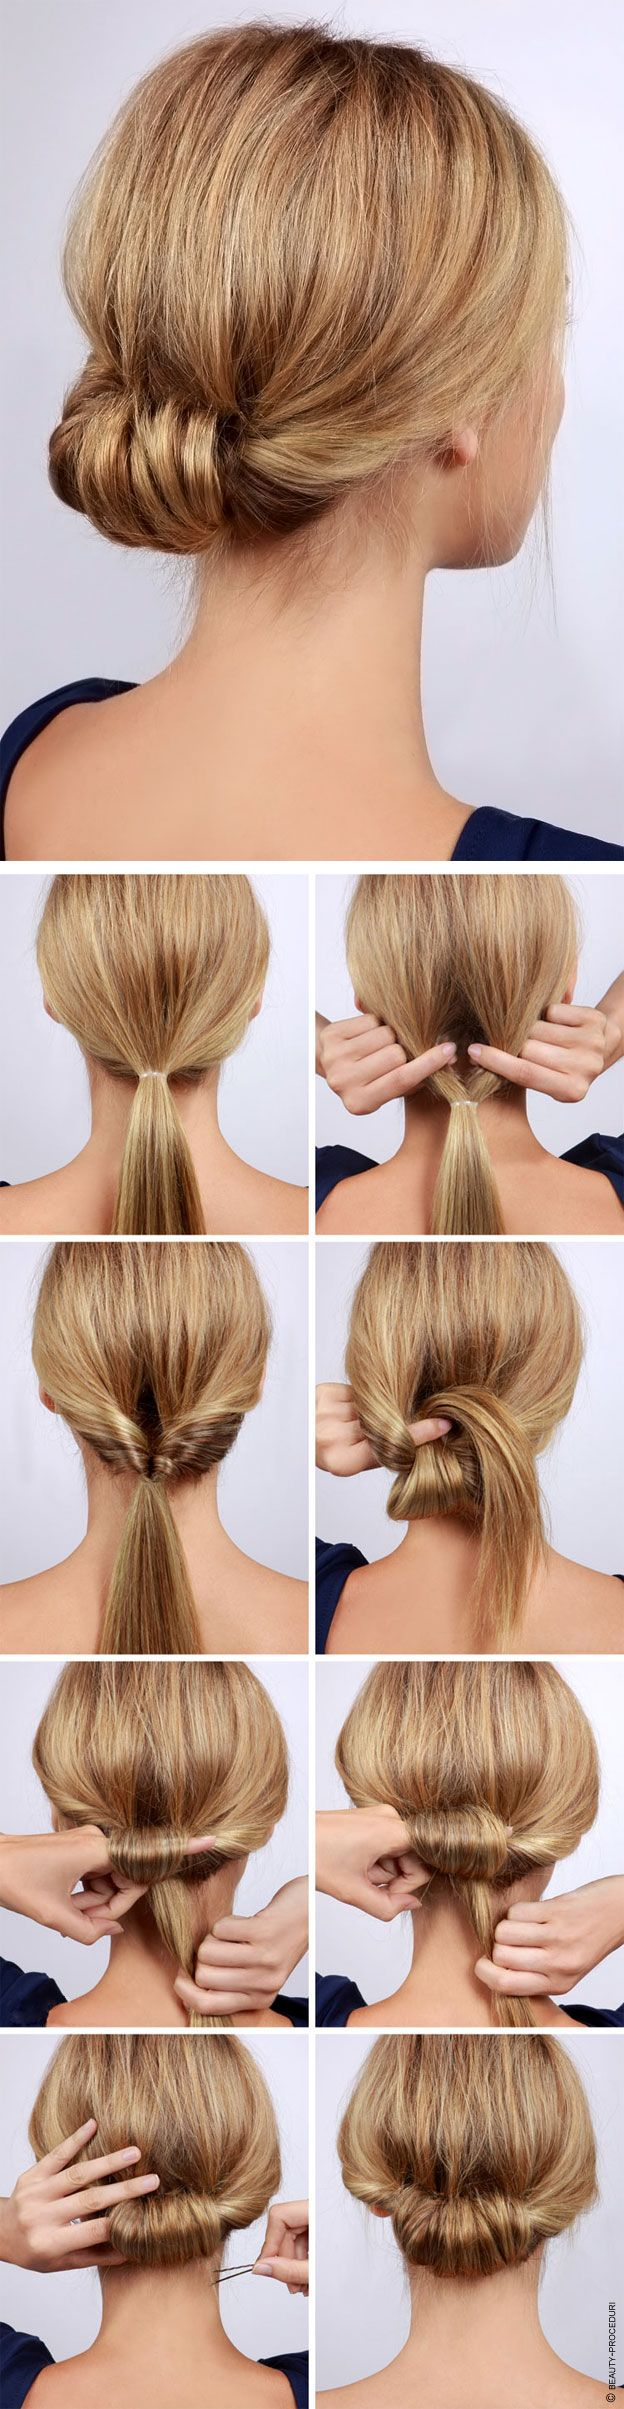 How-To: Low Rolled Updo Hair Tutorial